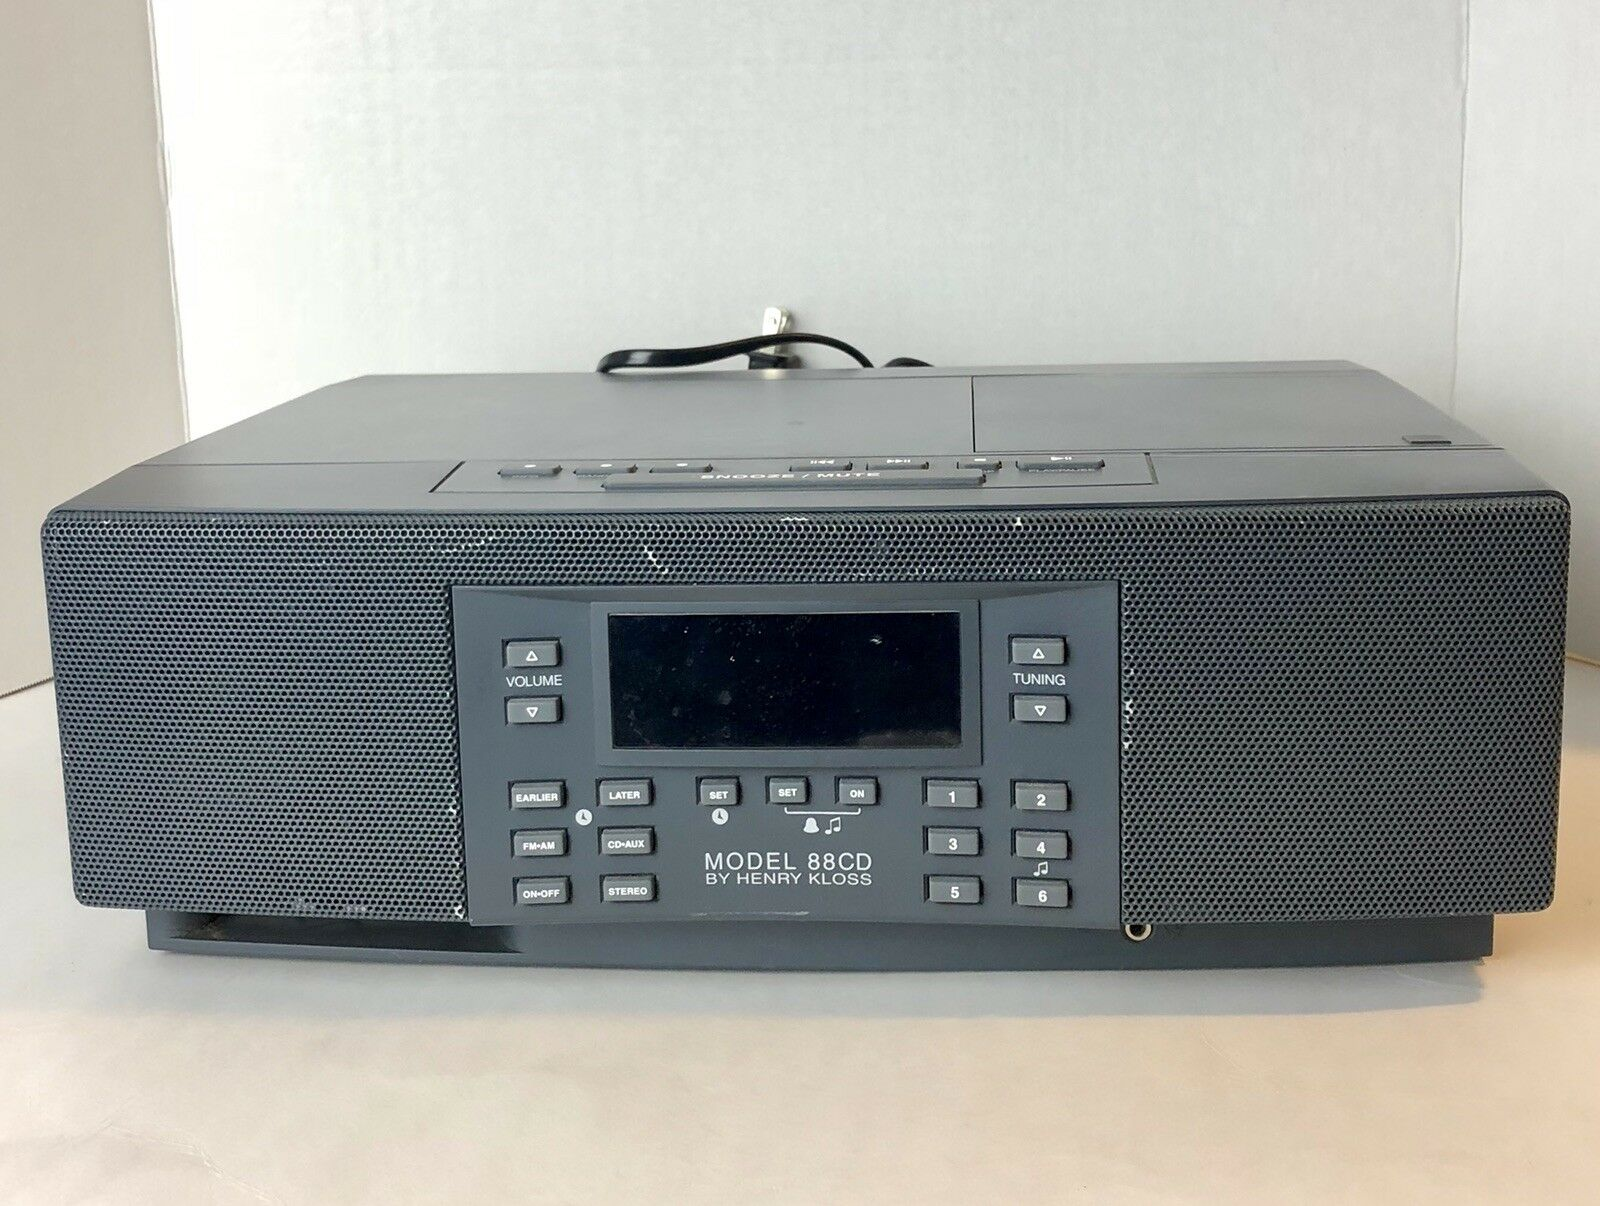 Model 88CD Radio By HENRY KLOSS of Cambridge SoundWorks Good Tested 1 of  5Only 1 available See More